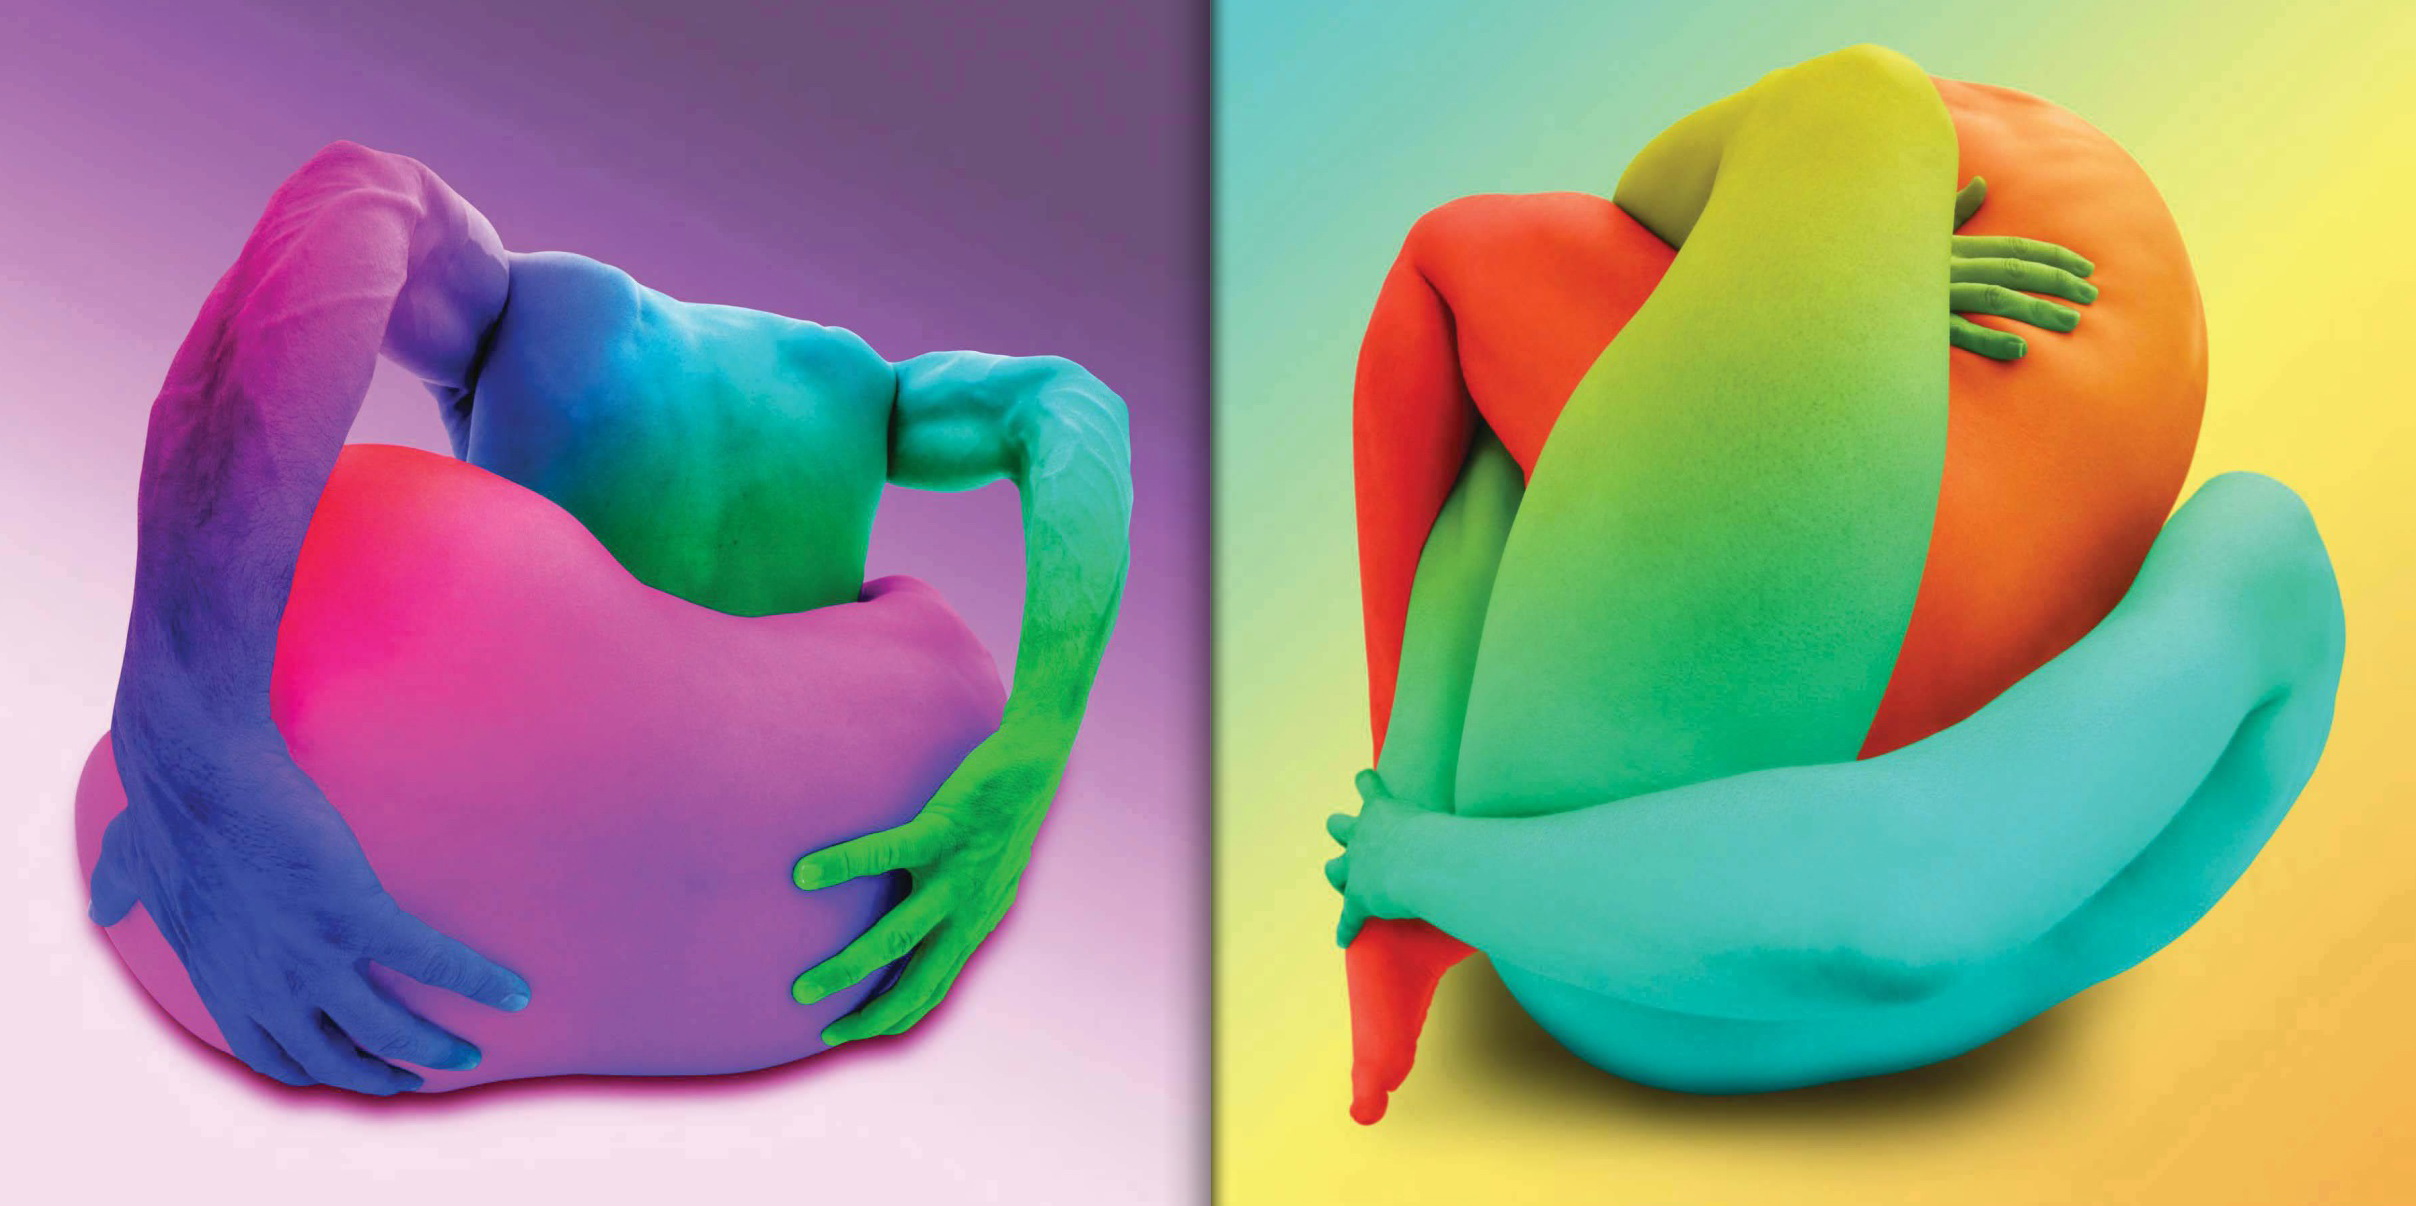 Left: Body Knot #186, Photographed in New York City, 2000. Right: Body Knot #256, Photographed in New York City, 2000.  © Howard Schatz and Beverly Ornstein